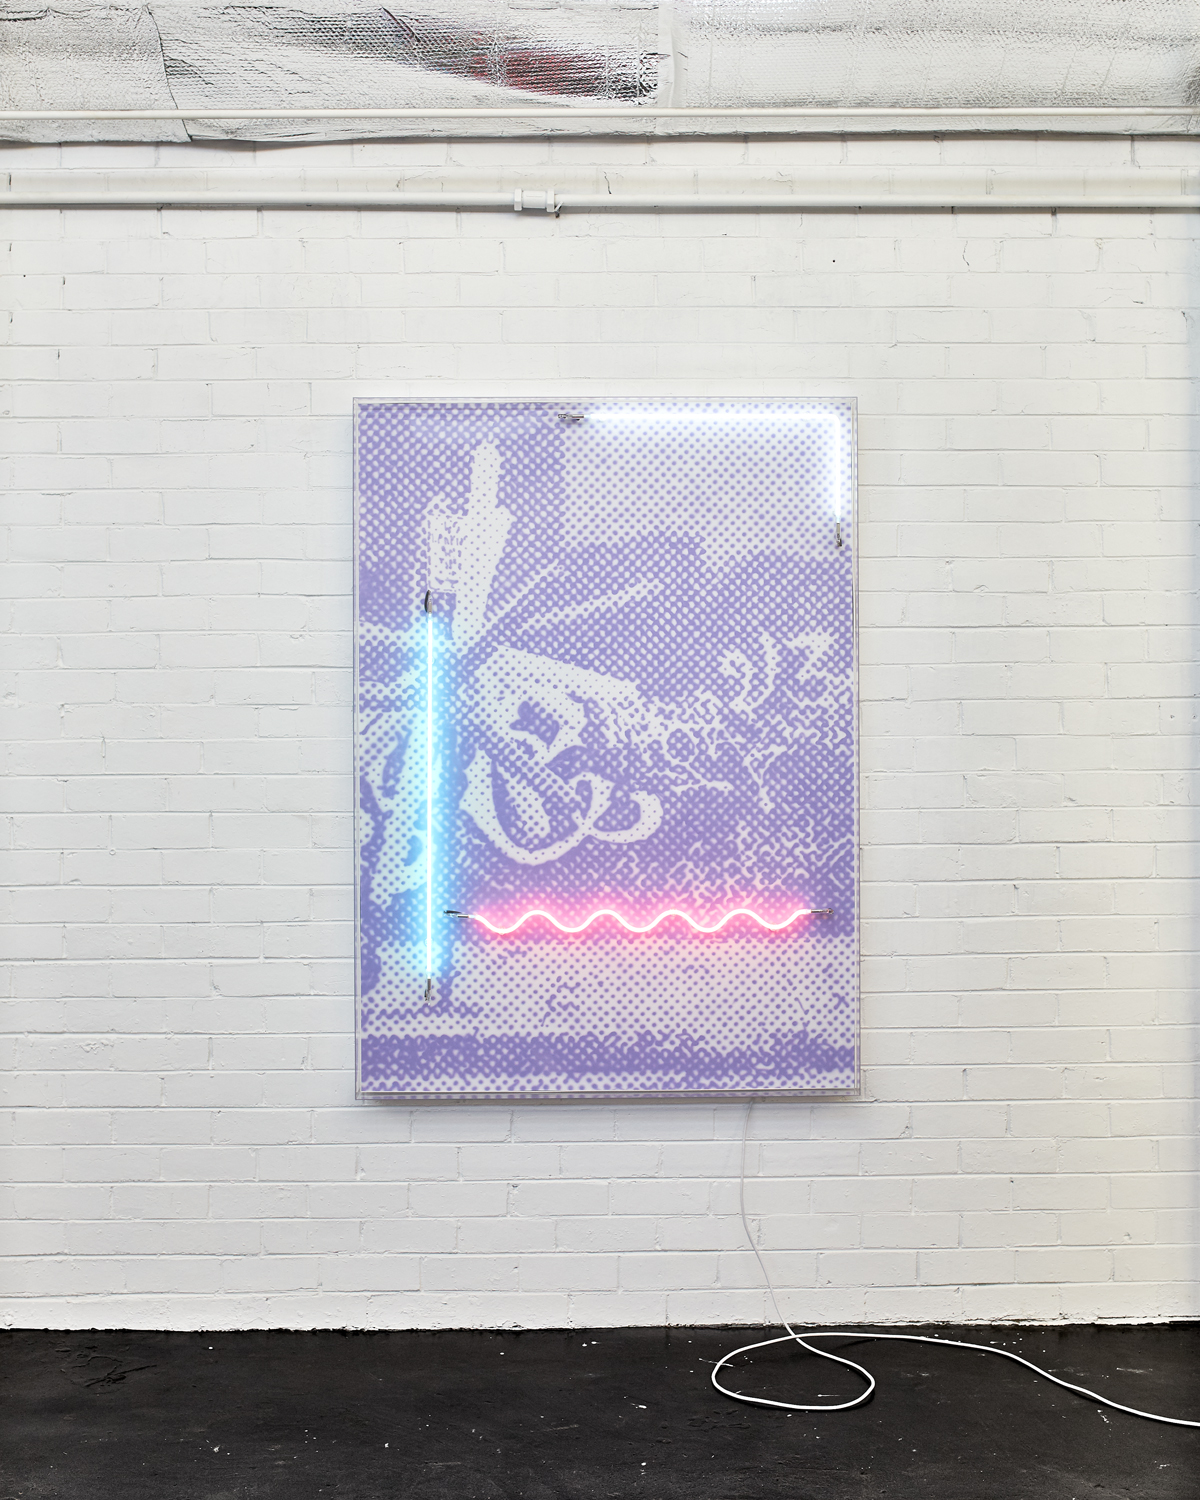 Street Party  Airbrush acrylic polymer and neon on dibond, acrylic frame 115x160cm